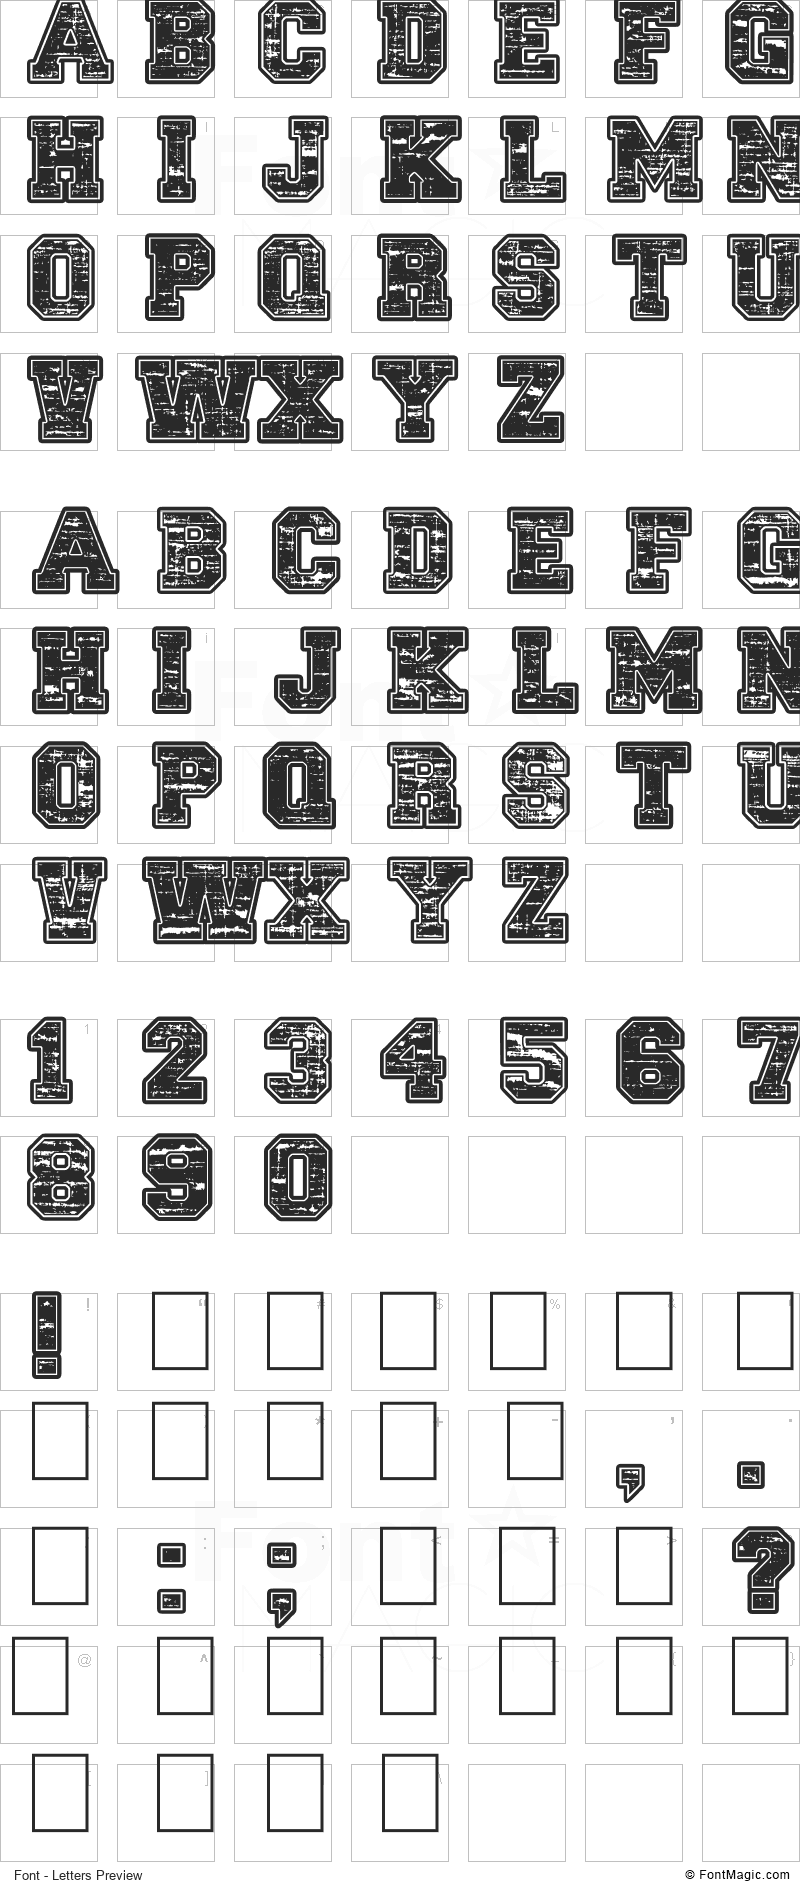 Lethal League Font - All Latters Preview Chart